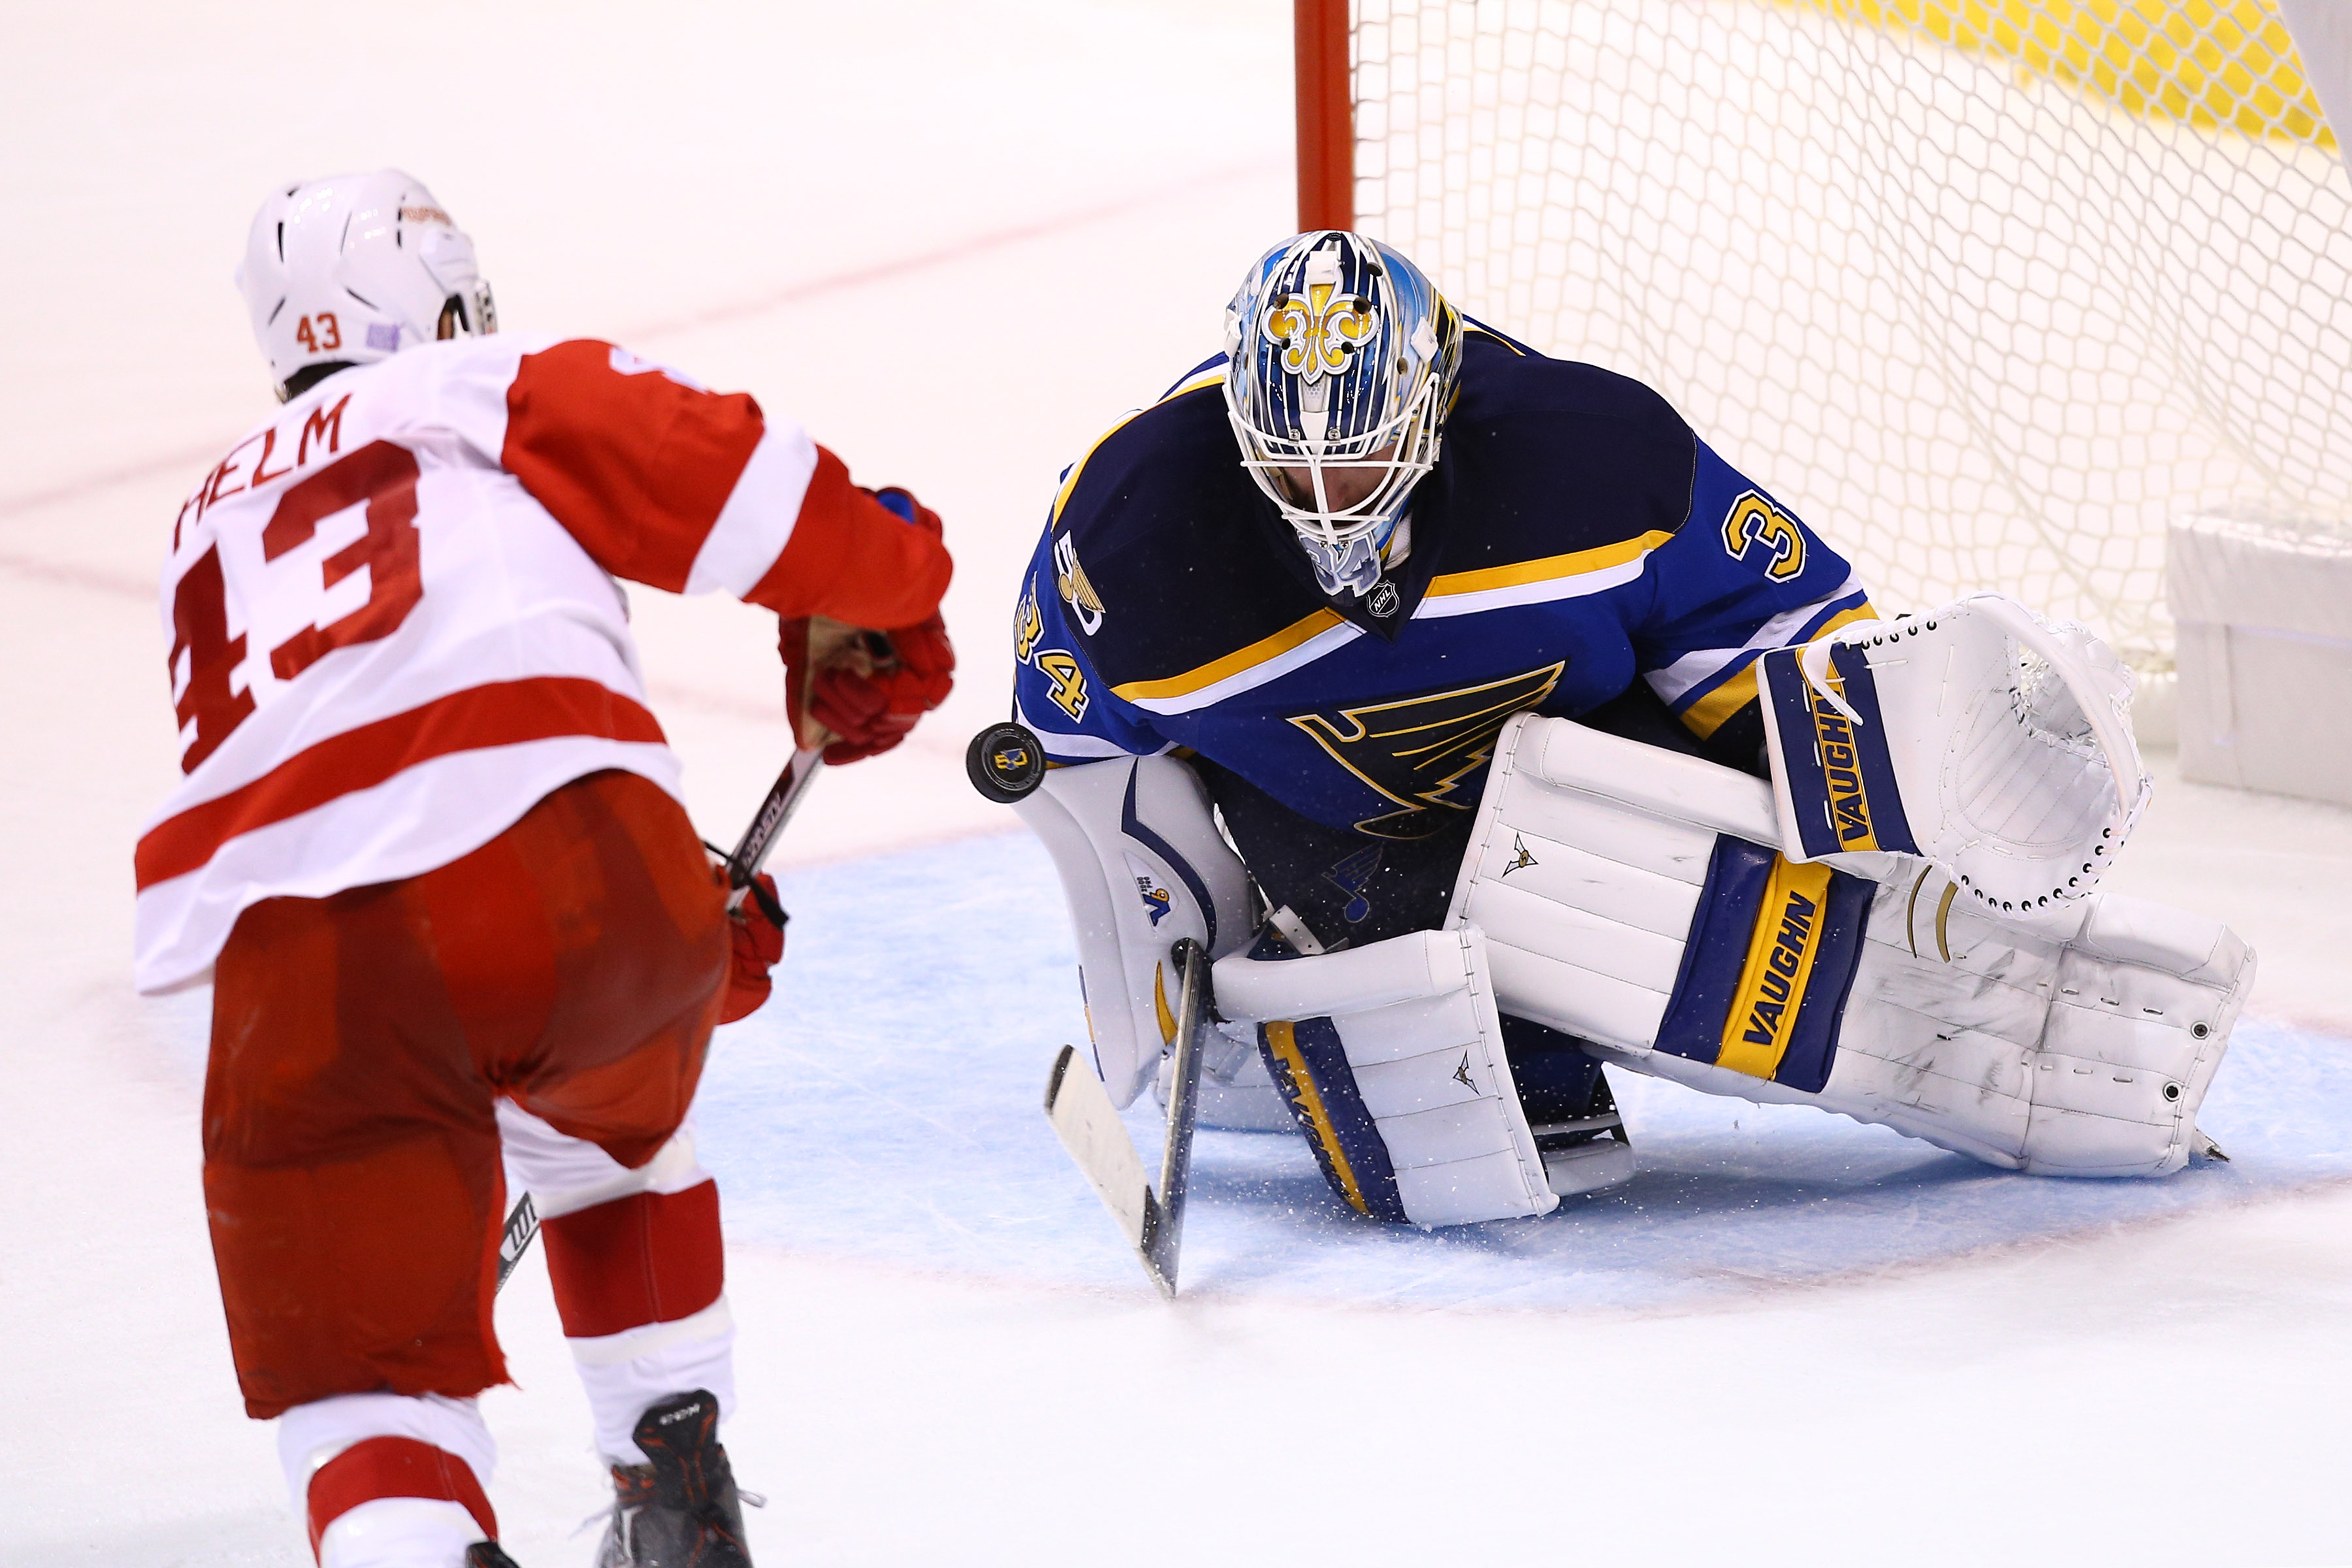 9646271-nhl-detroit-red-wings-at-st.-louis-blues